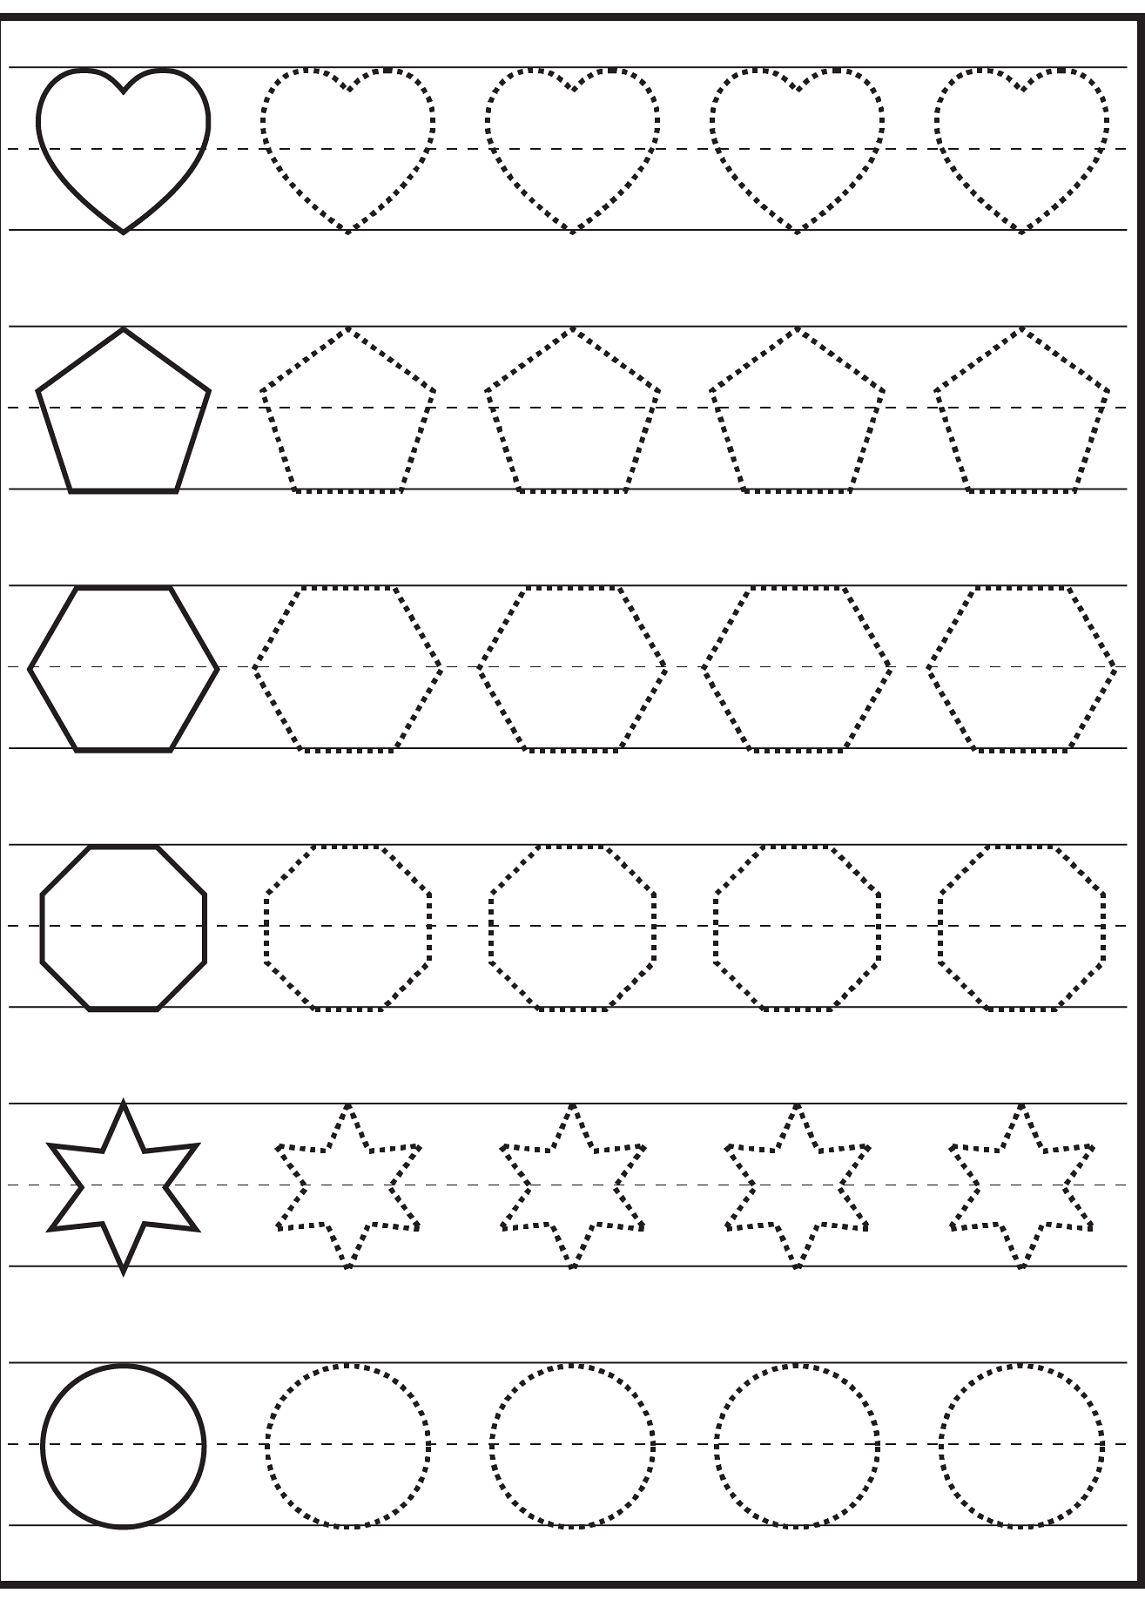 free traceable worksheets shapes Early Learning – Learning Shapes Worksheets